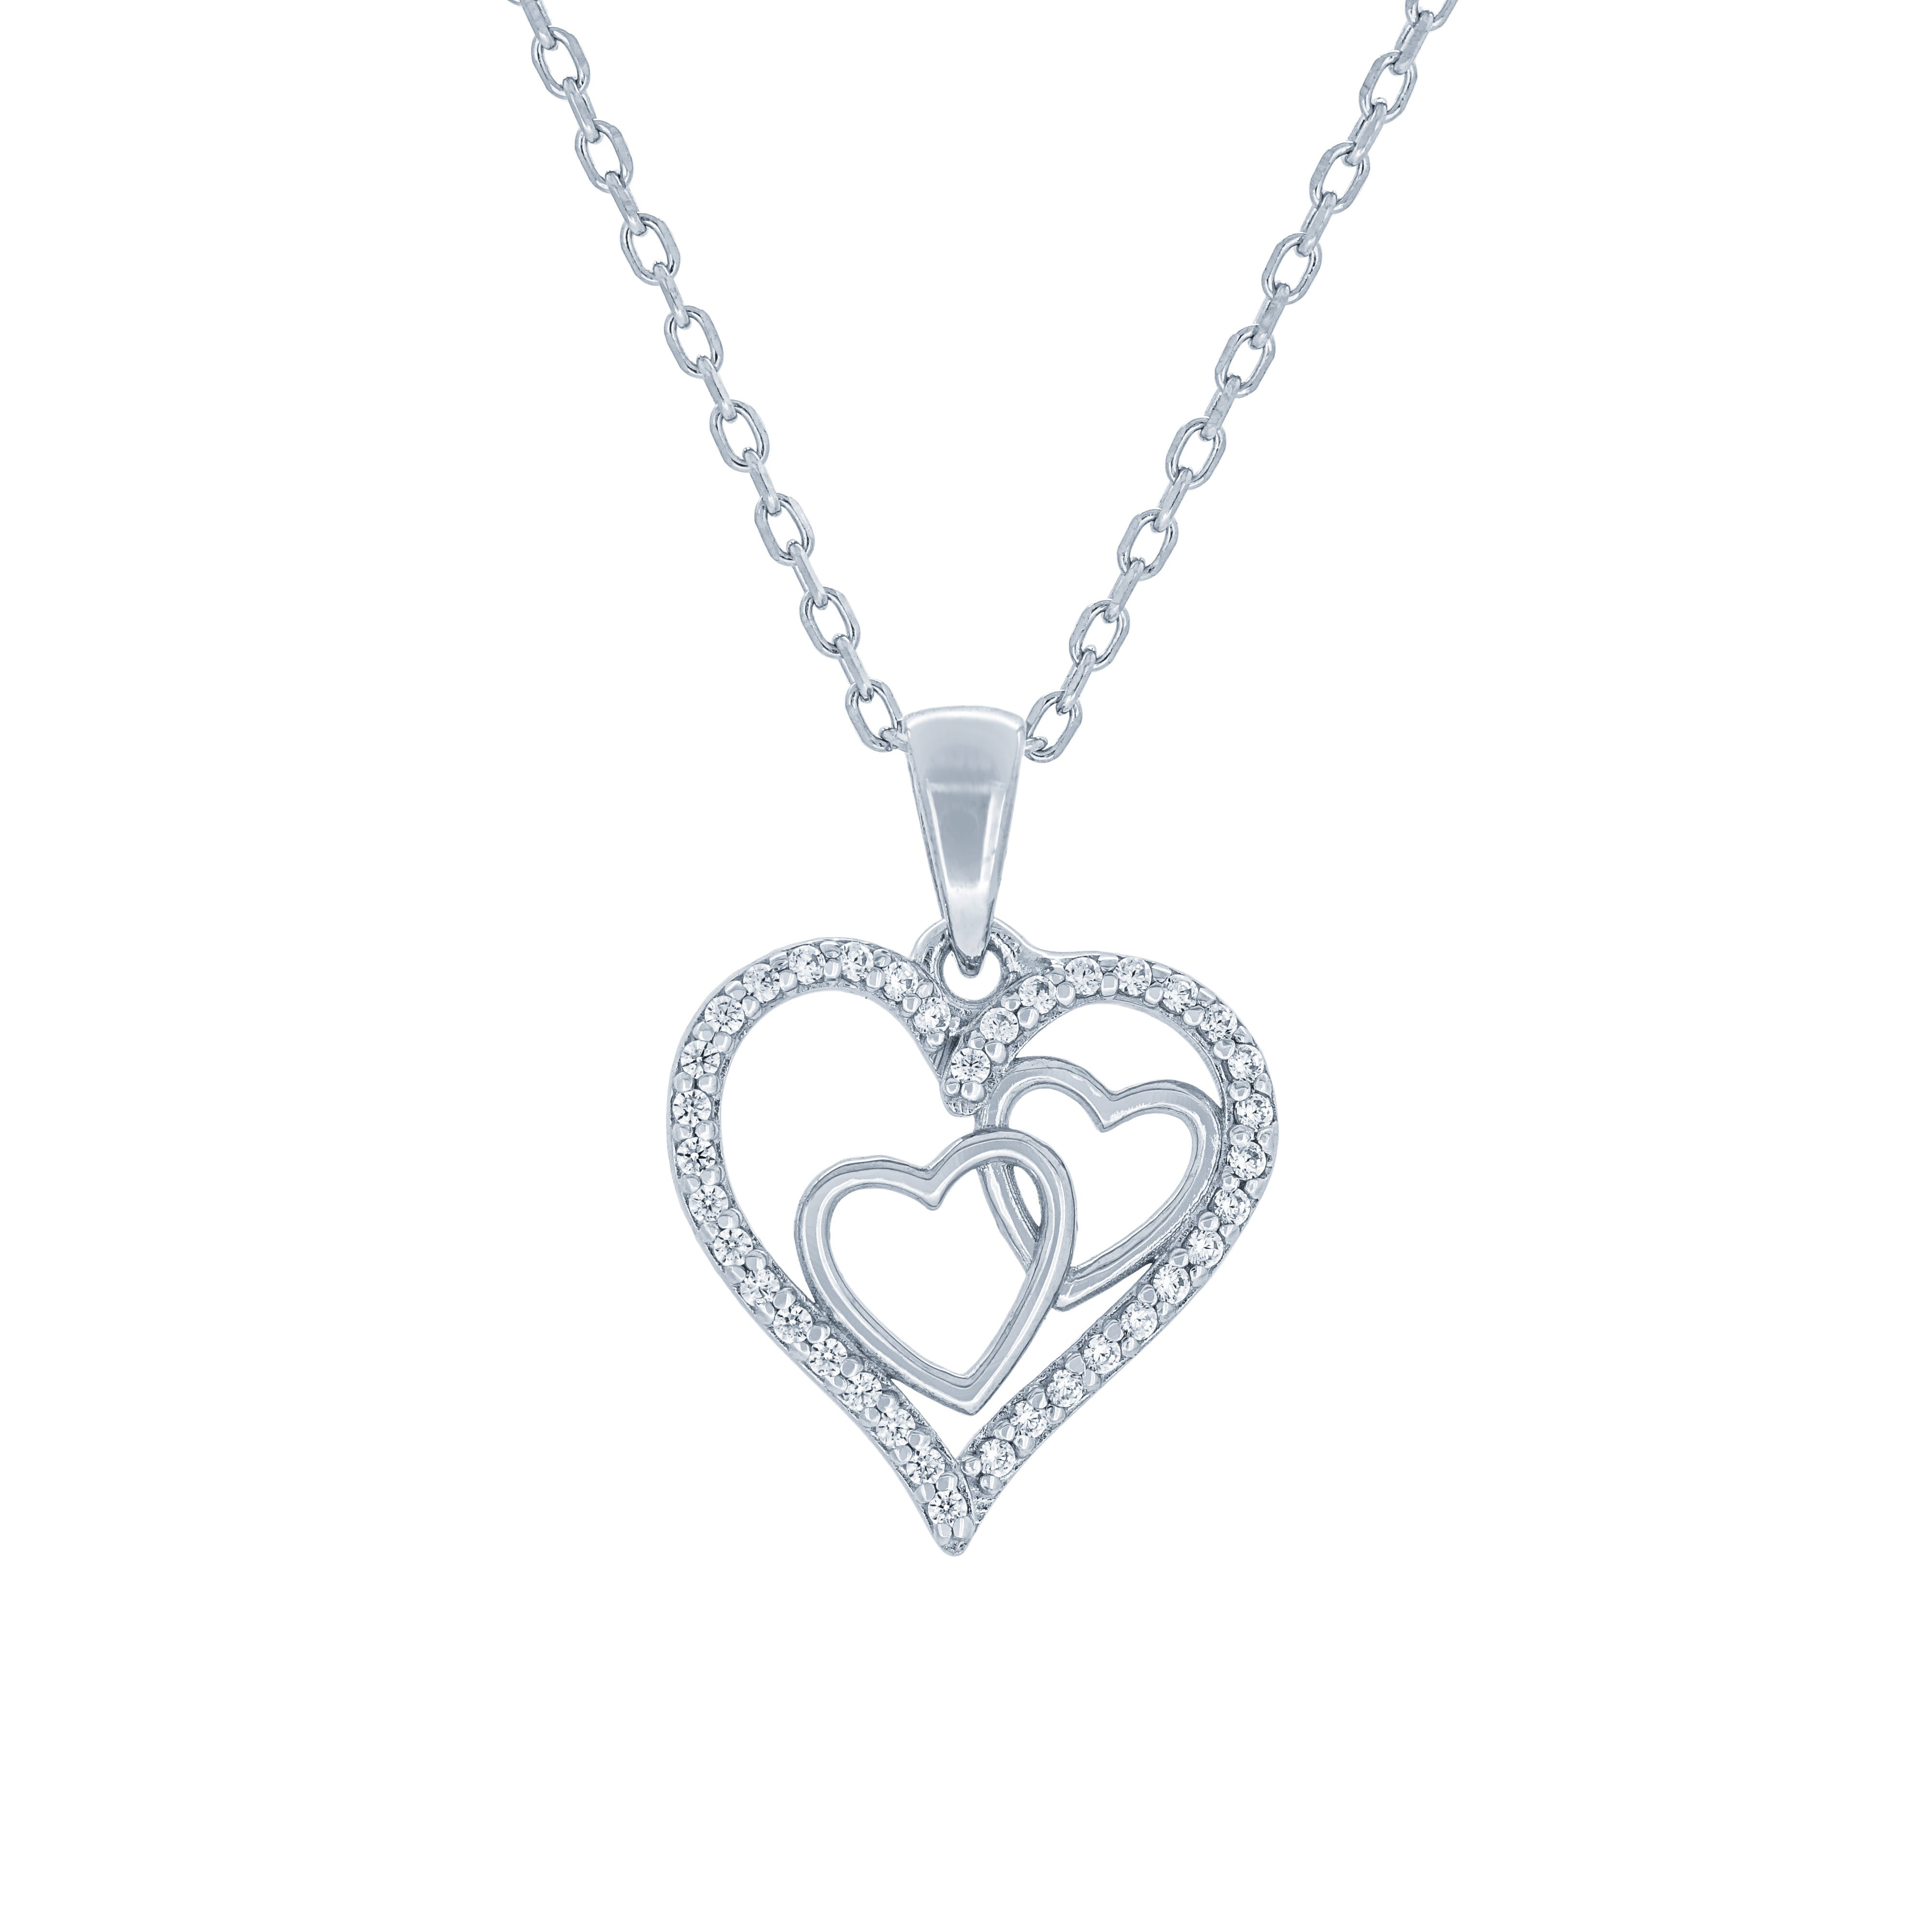 (100045) White Cubic Zirconia Heart Pendant Necklace In Sterling Silver